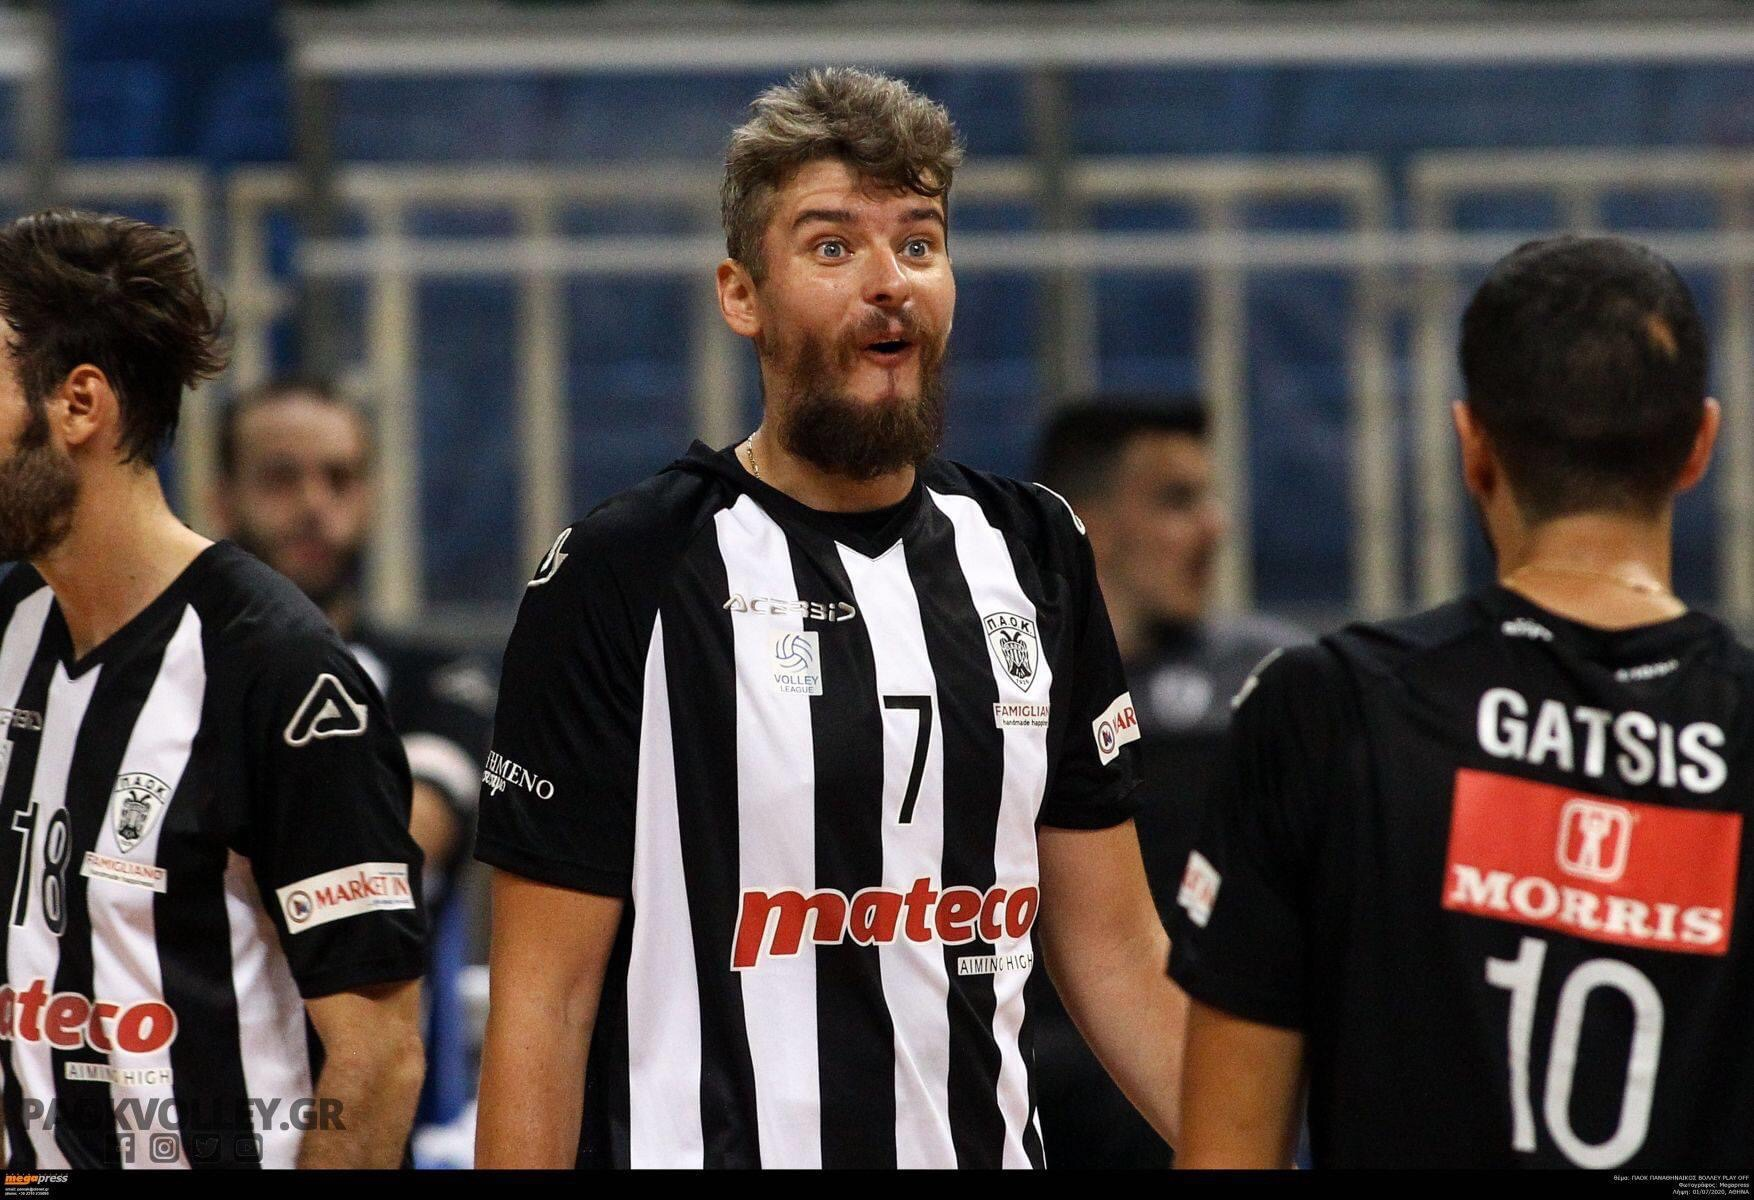 Greece: Another surprise! Clamorous comeback from 0-2 to 3-2 of PAOK against Panathinaikos